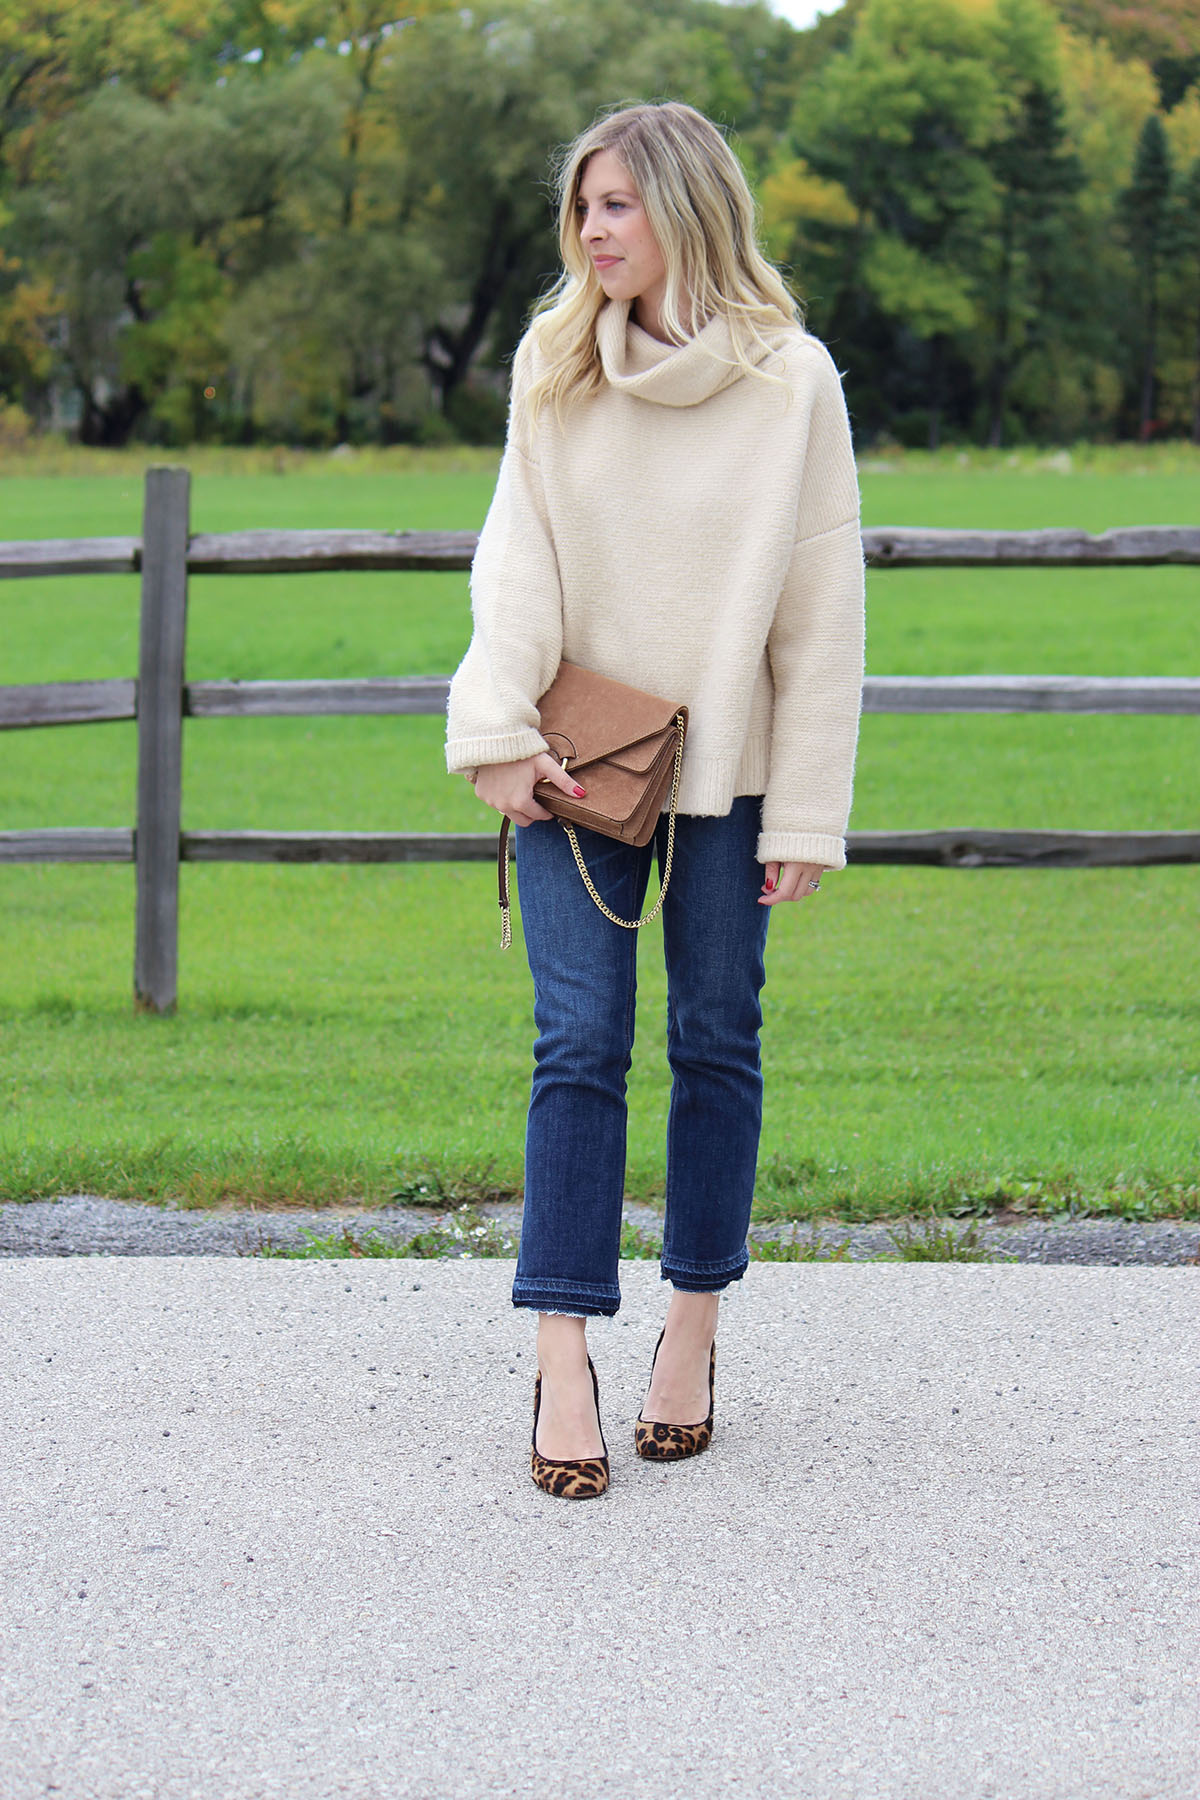 Oversized Turtleneck Sweater with Distressed Denim